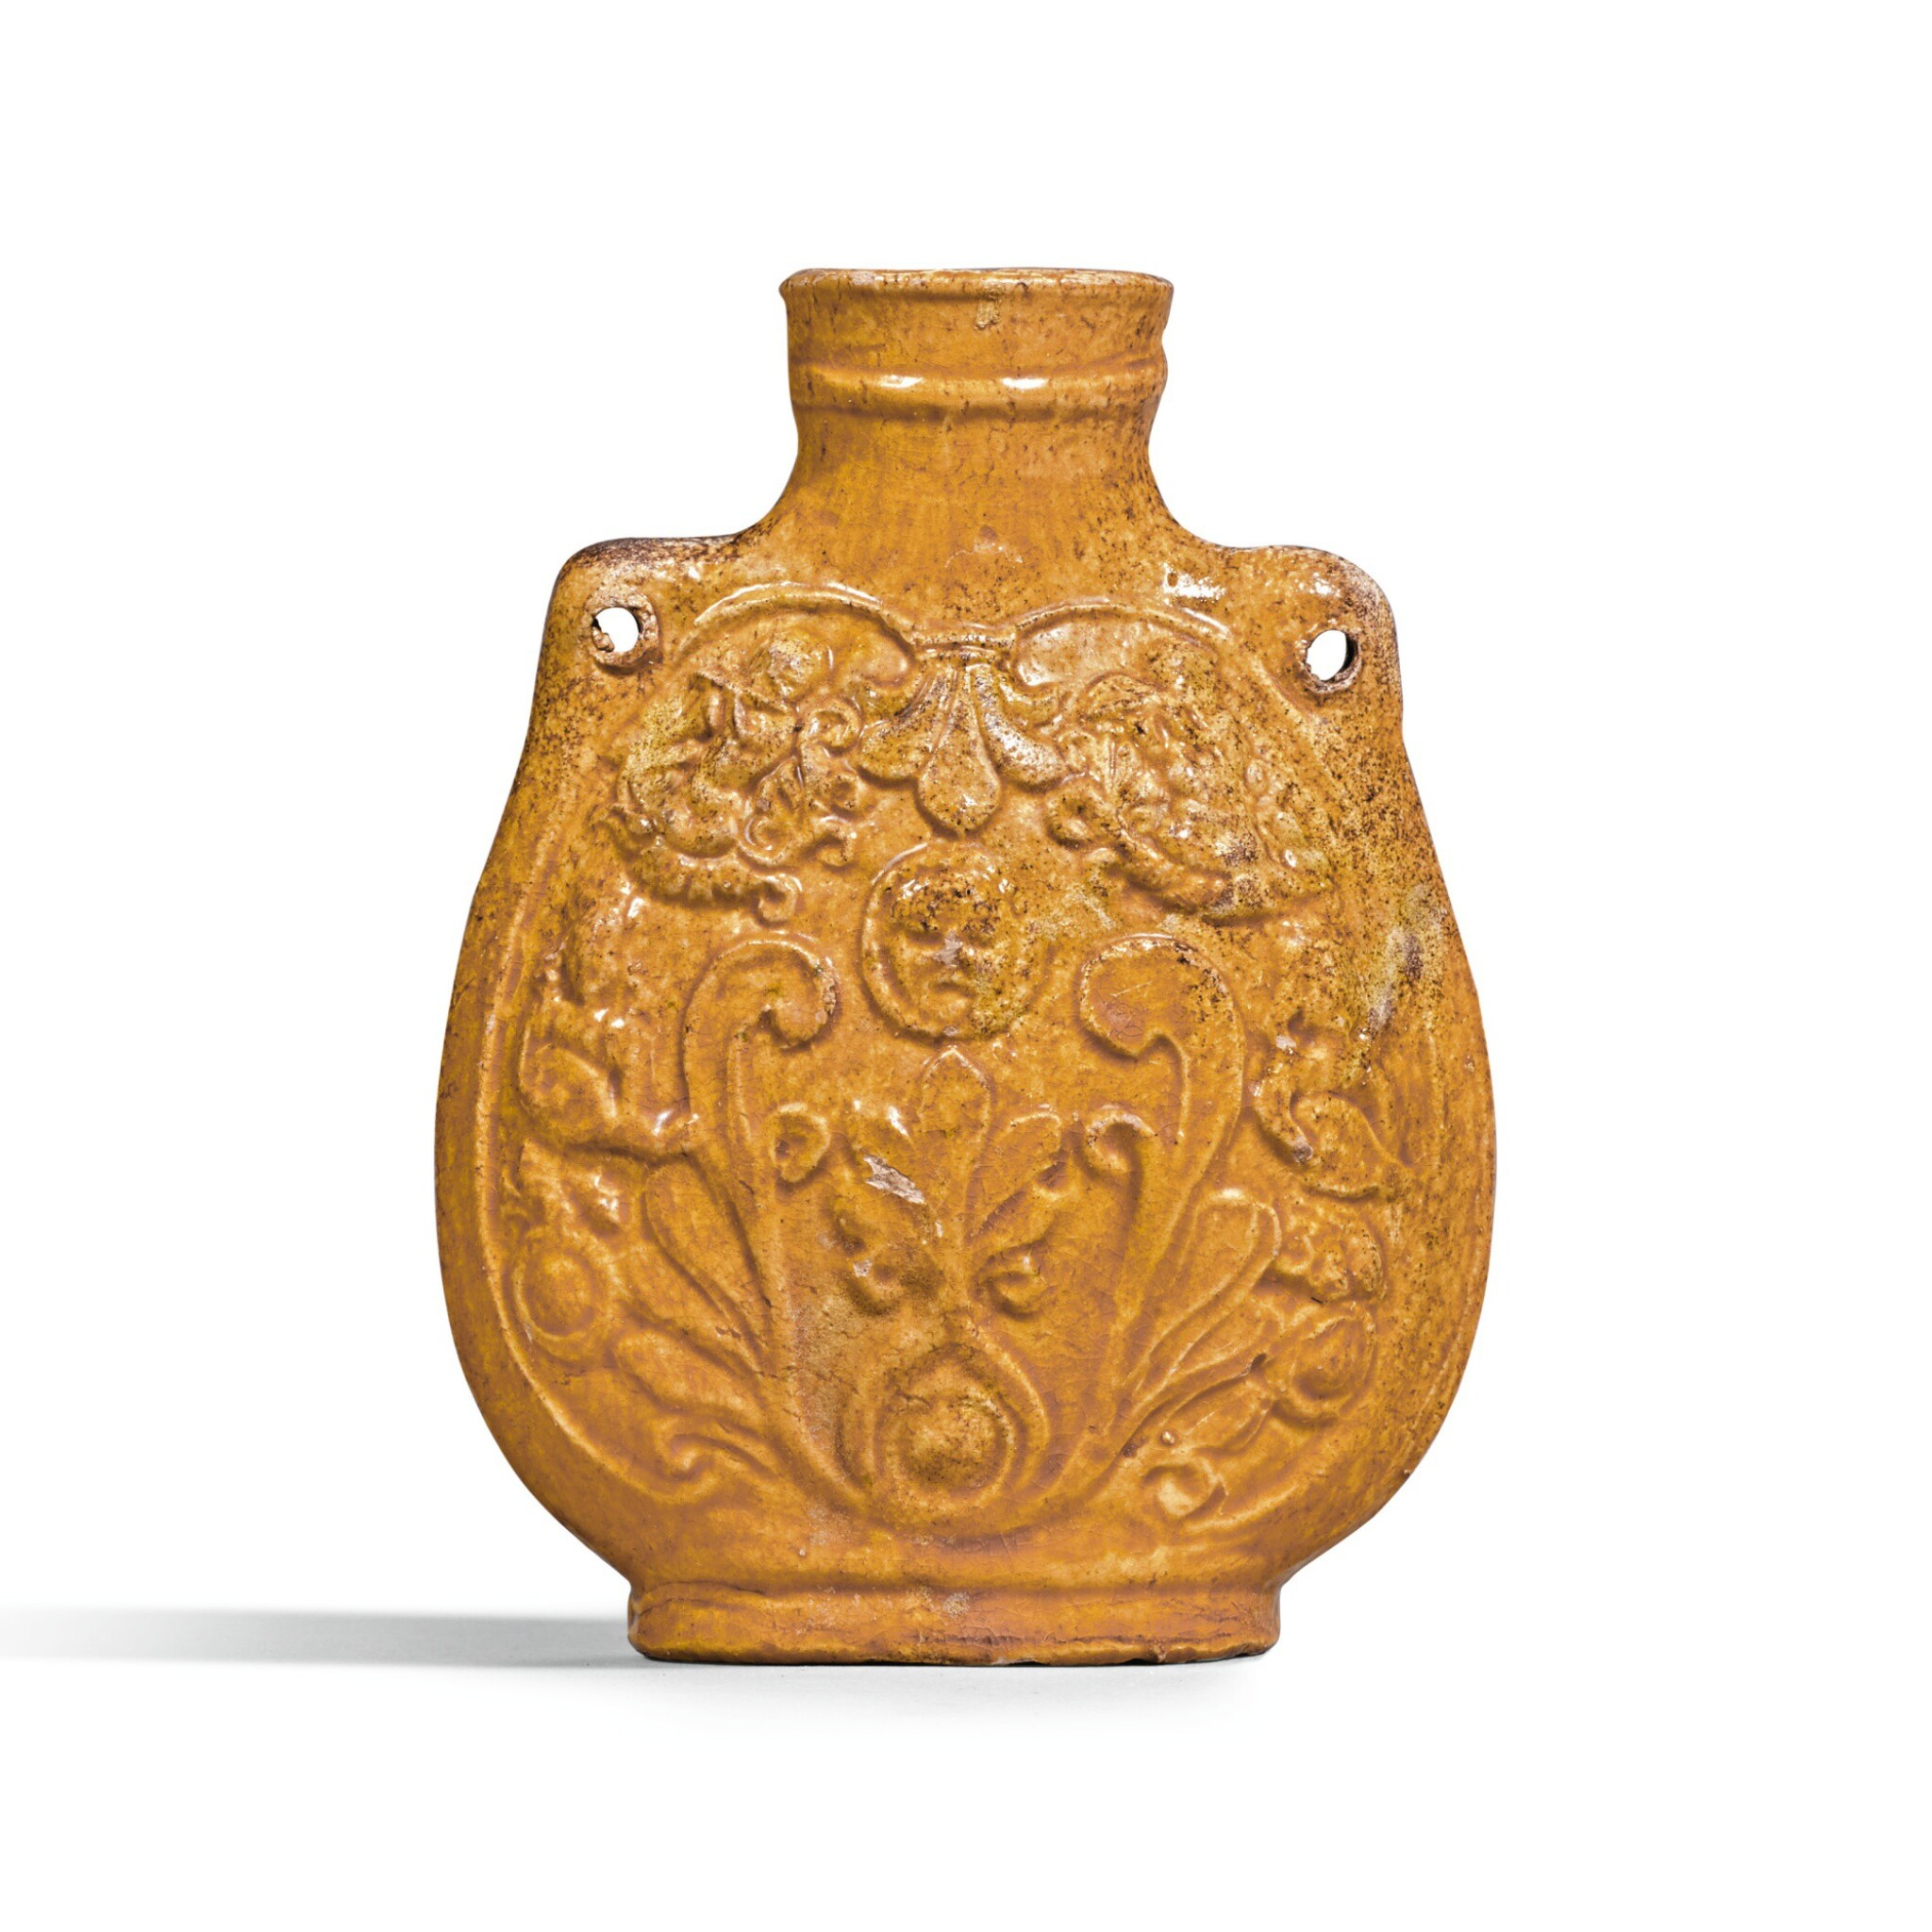 View full screen - View 1 of Lot 208. A RARE AMBER-GLAZED 'MUSICIANS' FLASK NORTHERN QI DYNASTY | 北齊 黃釉樂舞圖扁壺.